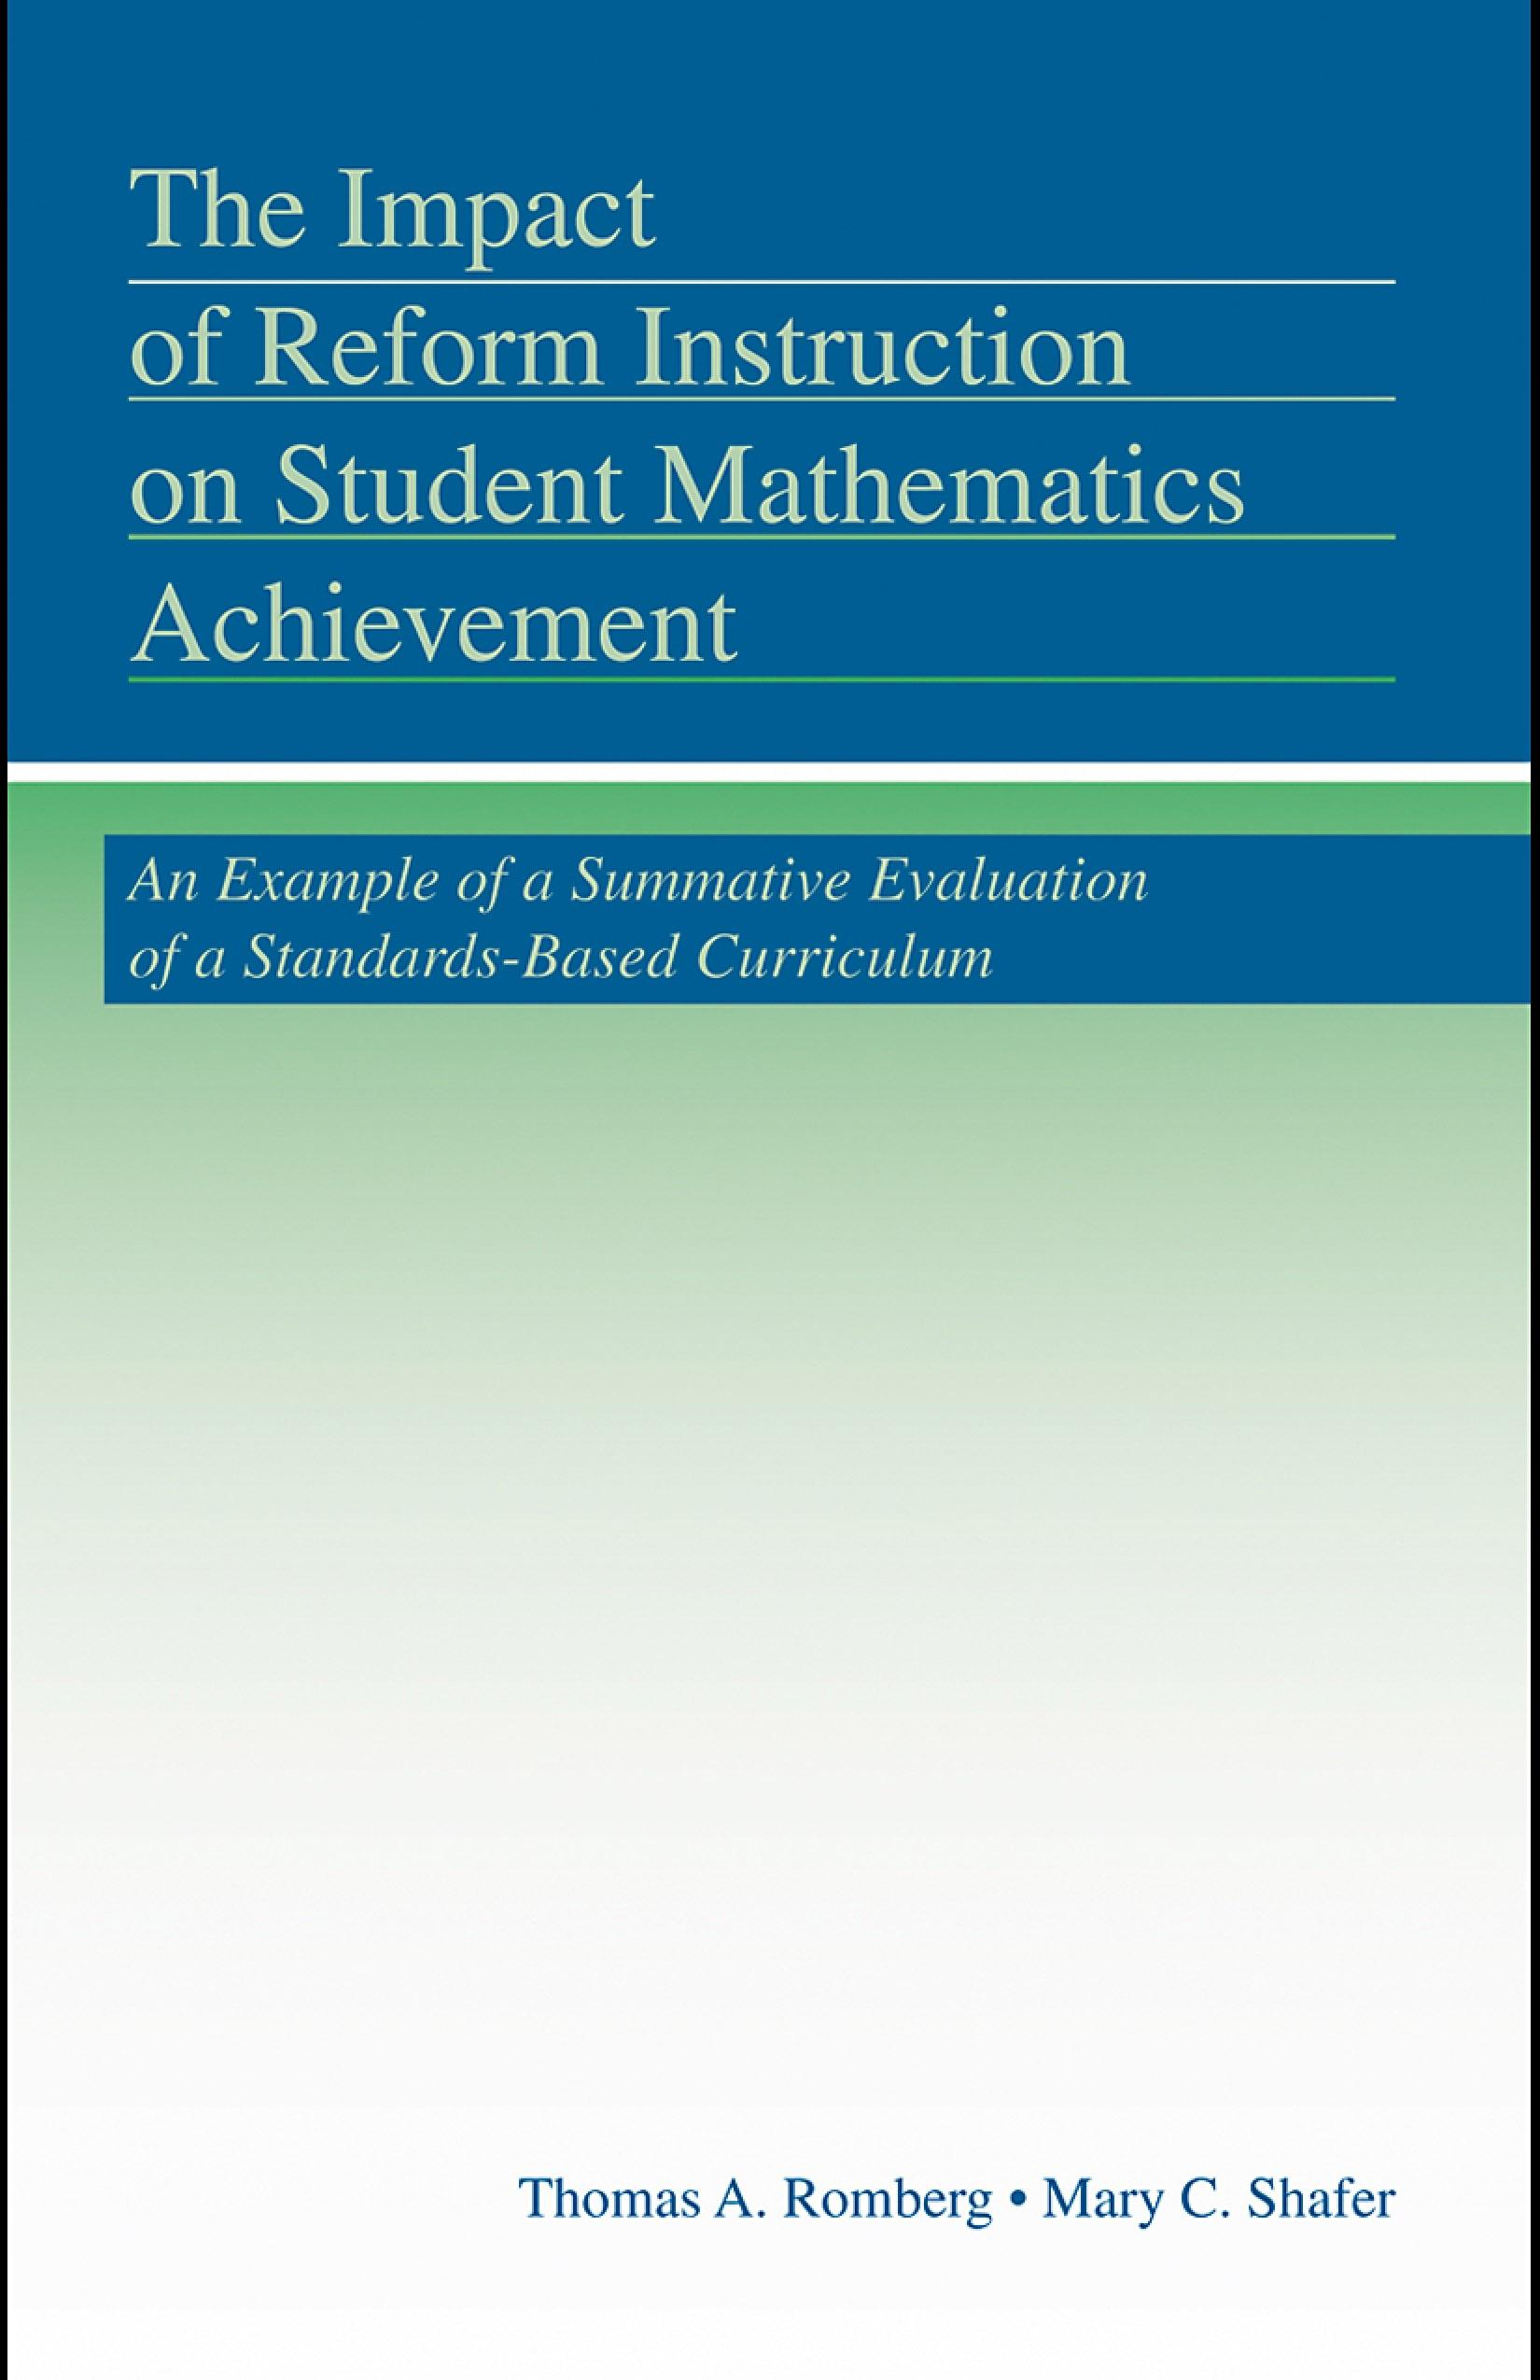 The Impact of Reform Instruction on Student Mathematics Achievement: An Example of a Summative Evaluation of a Standards-Based Curriculum EB9780203895221